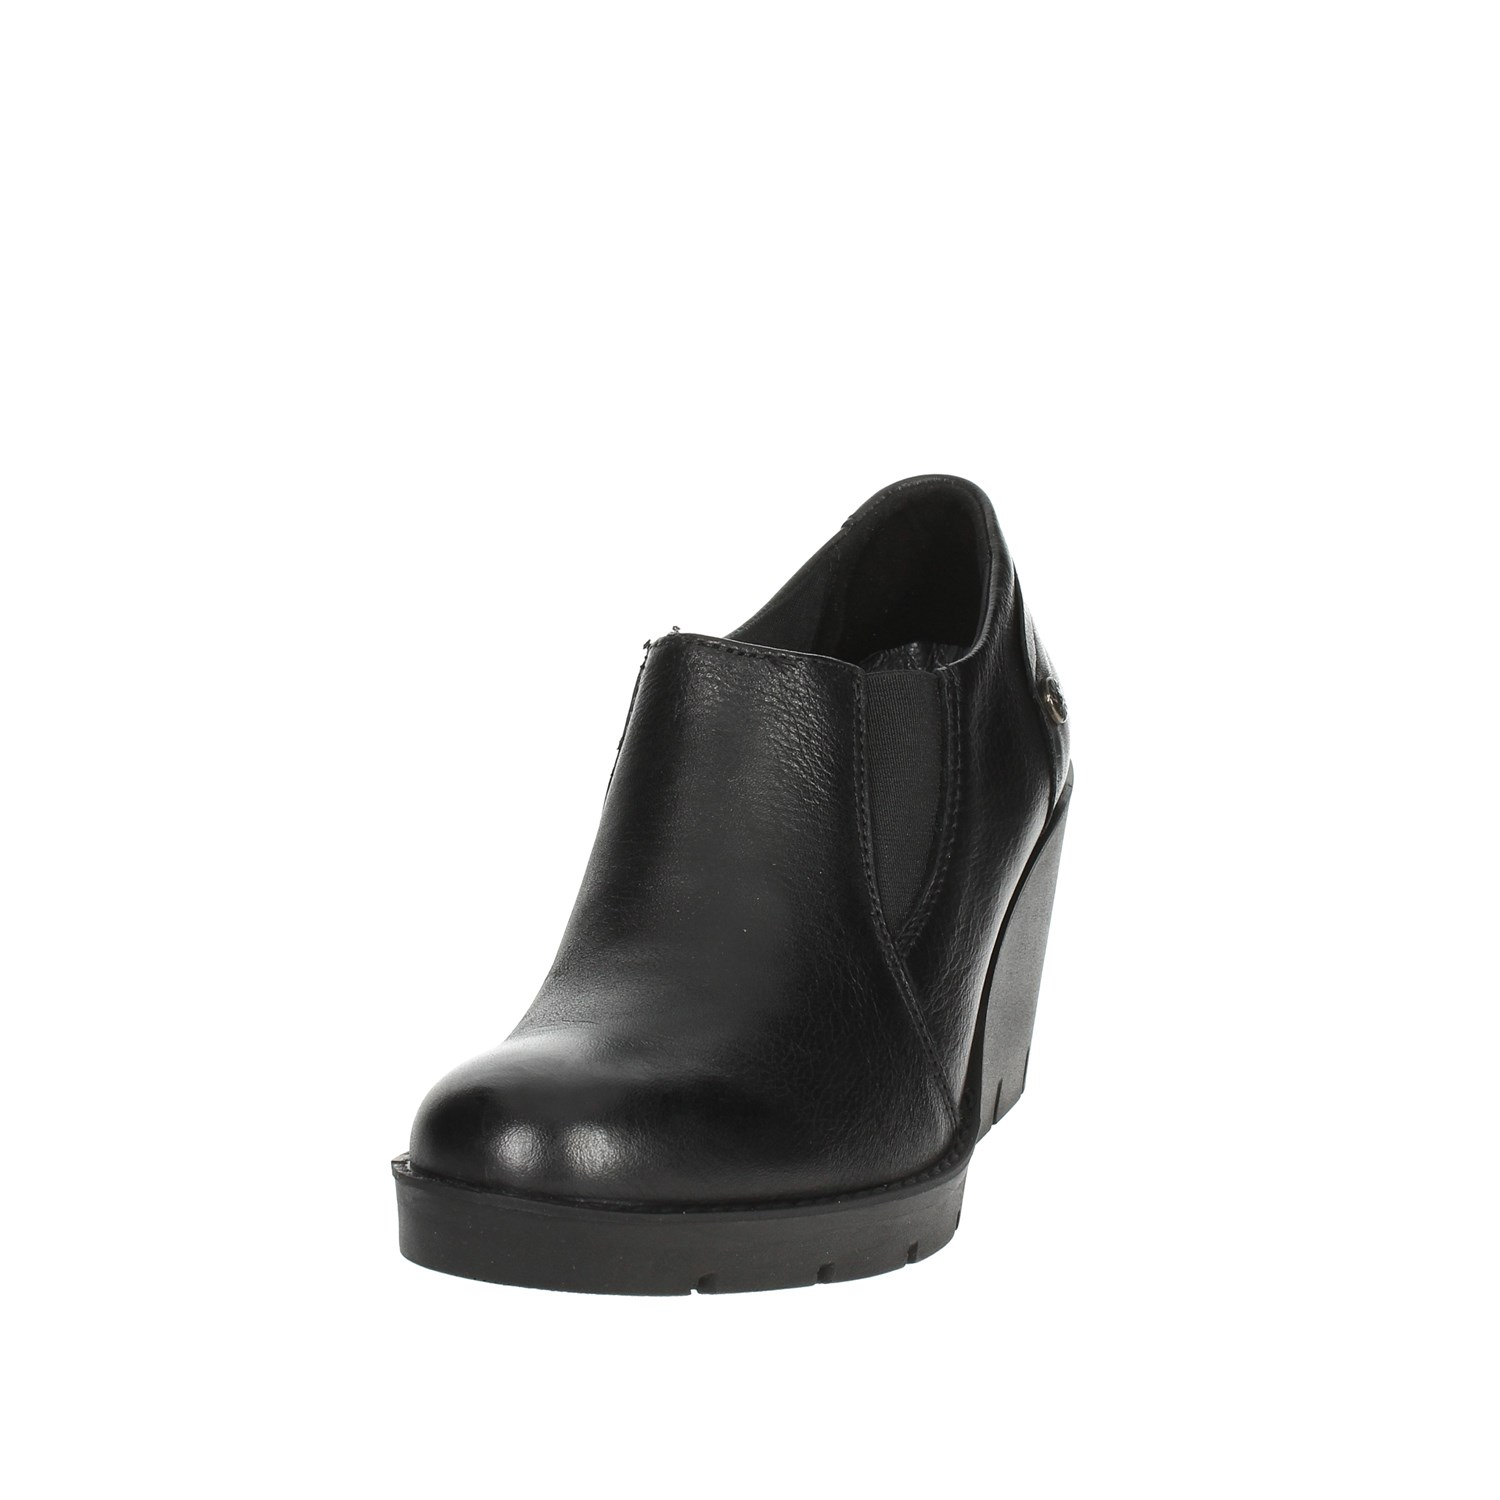 Imac 205410 Black Black Black Ankle Boots With Wedge Heels Women Fall Winter f41d4e